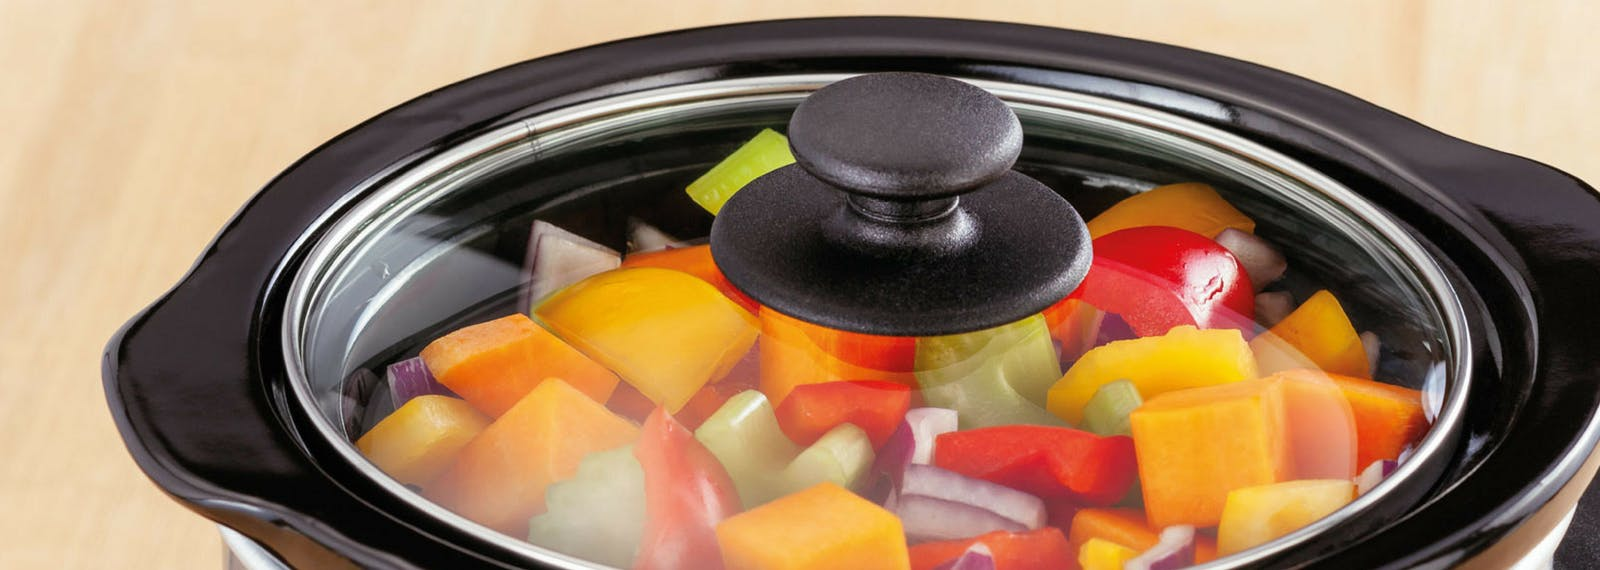 Do I Need a Slow Cooker?